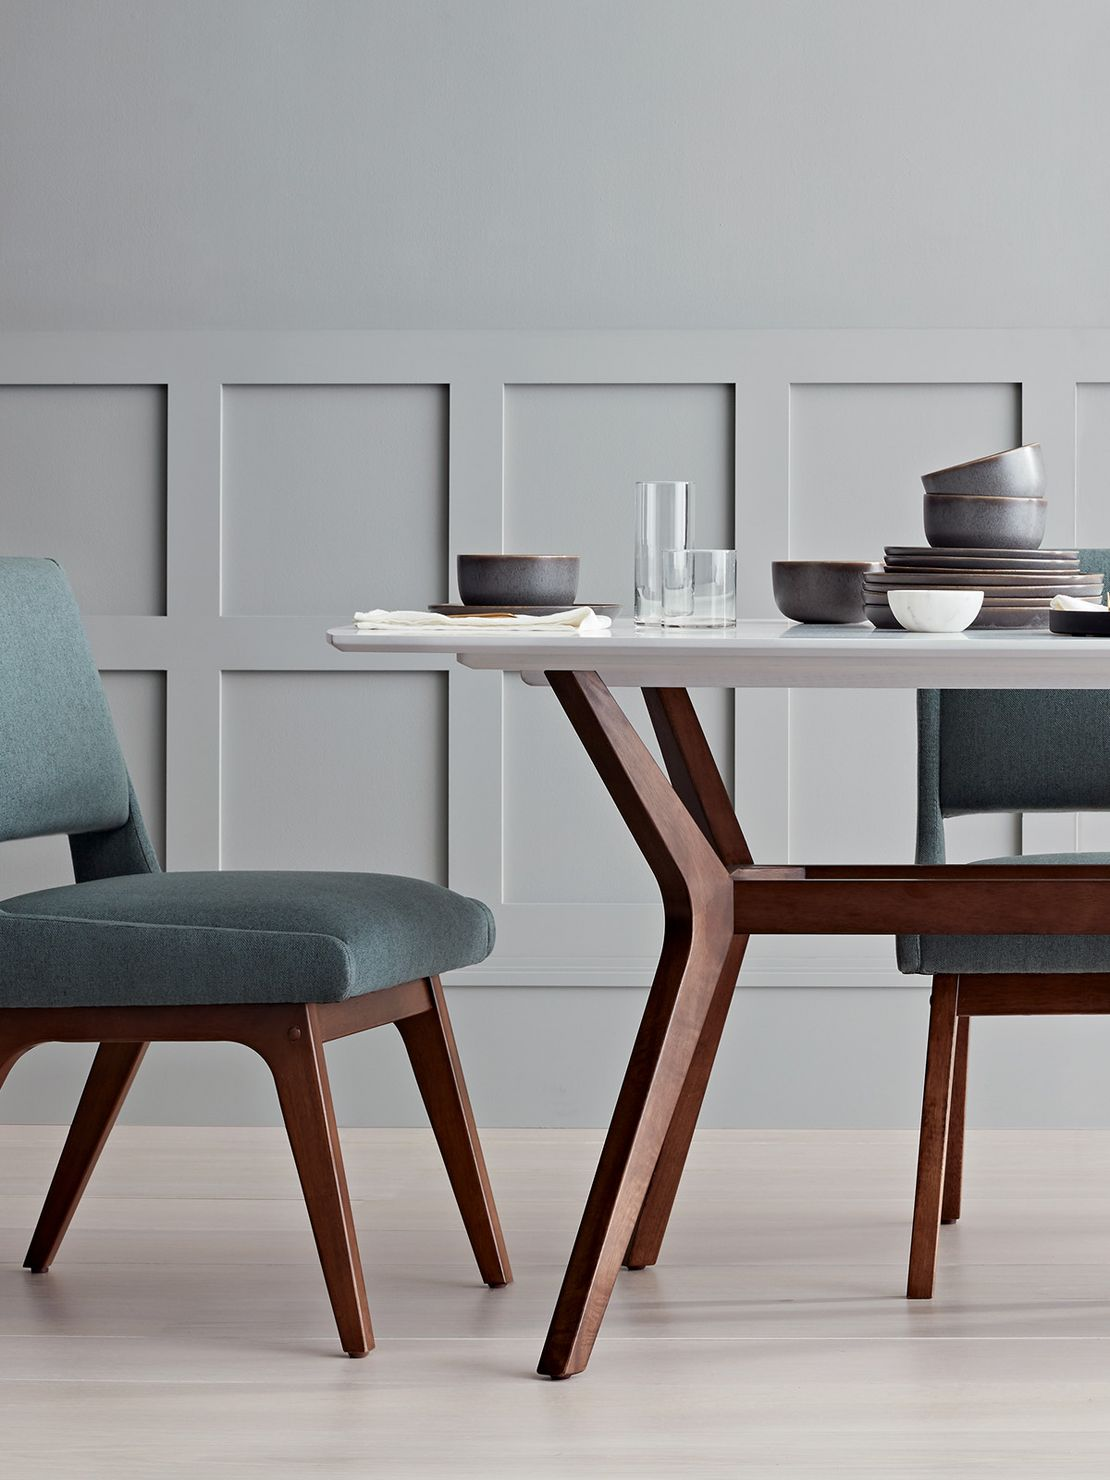 Sleek Modern Chairs From 5499 Project 62 Dining Furniture